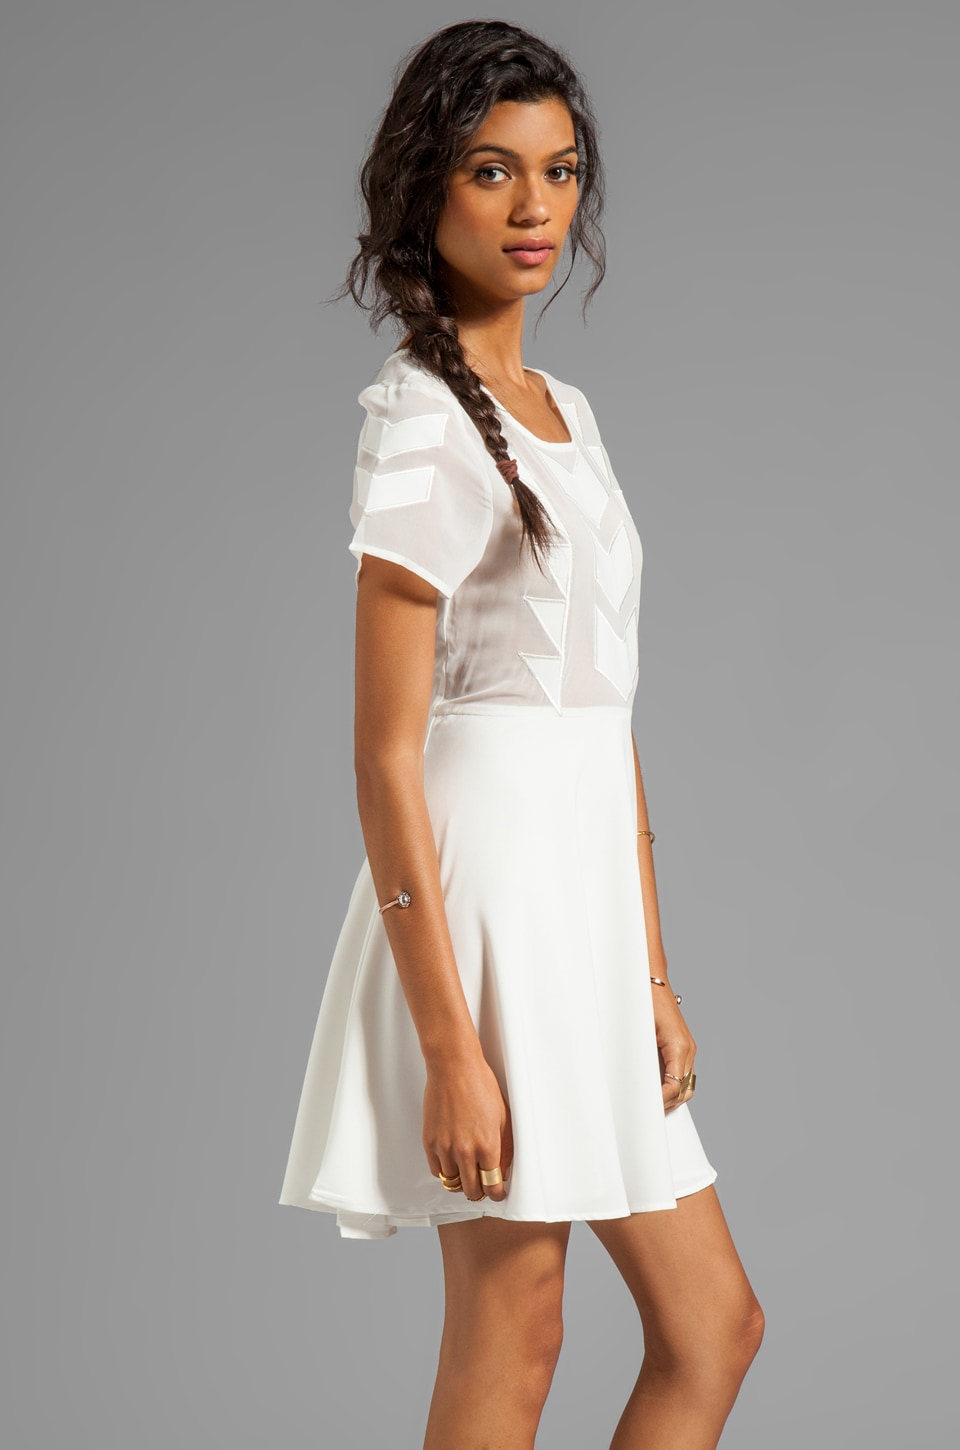 MINKPINK Zepher Dress in White